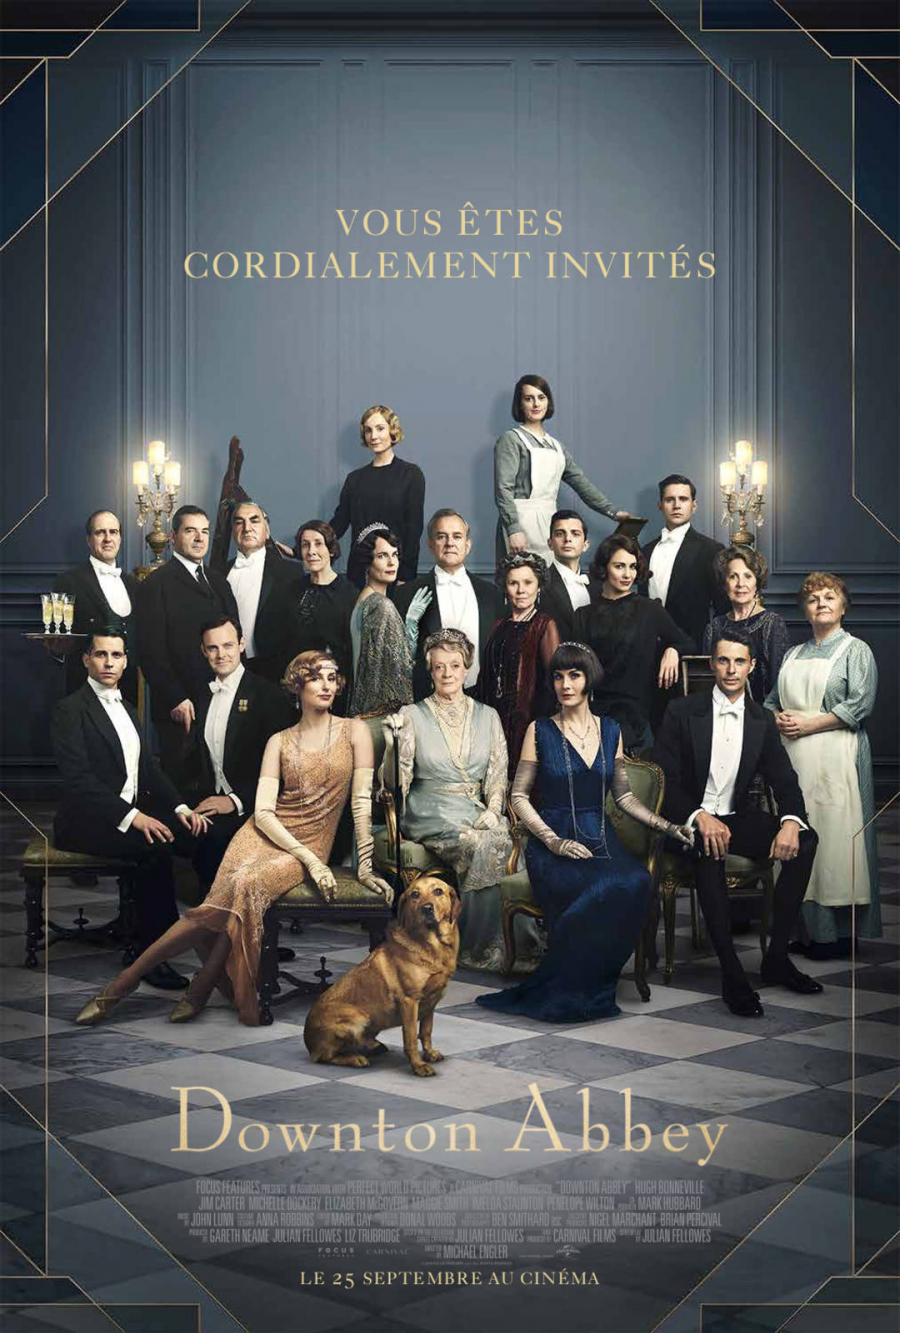 Downton Abbey (VOst)